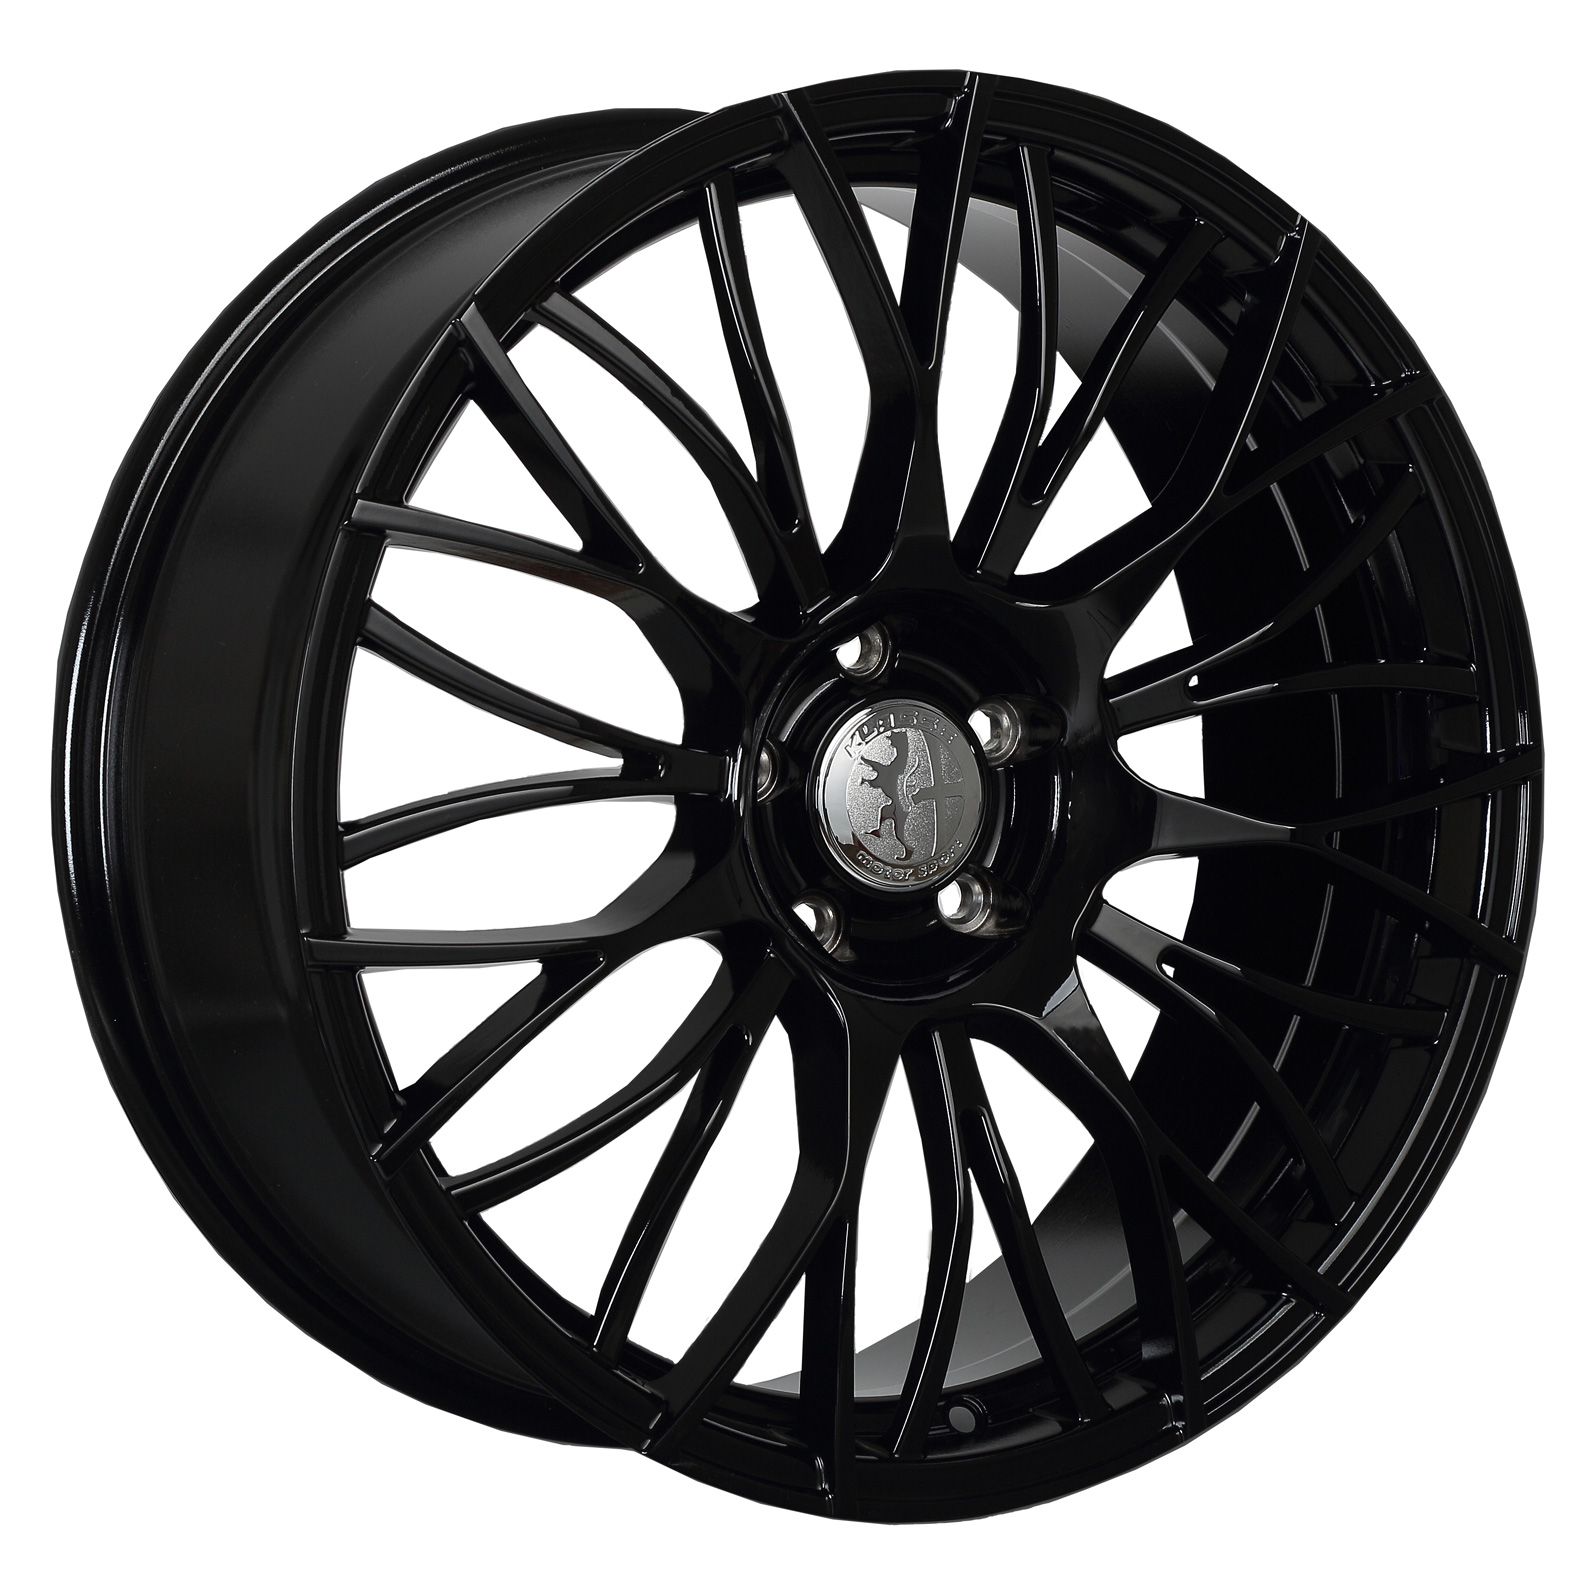 Klasse Santana Black Gloss Wheel